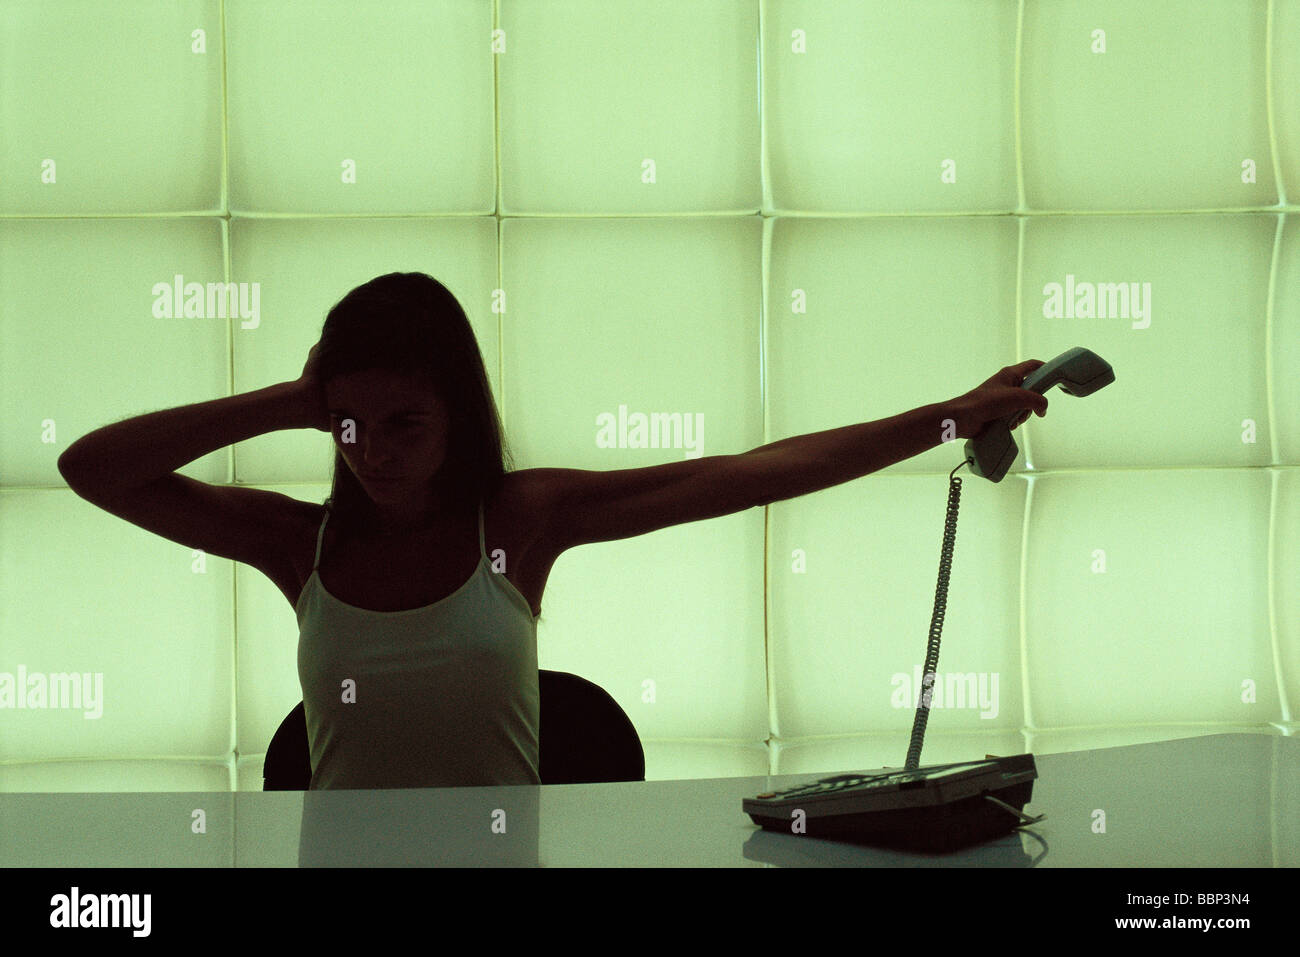 Woman at desk, holding head, holding phone receiver away - Stock Image